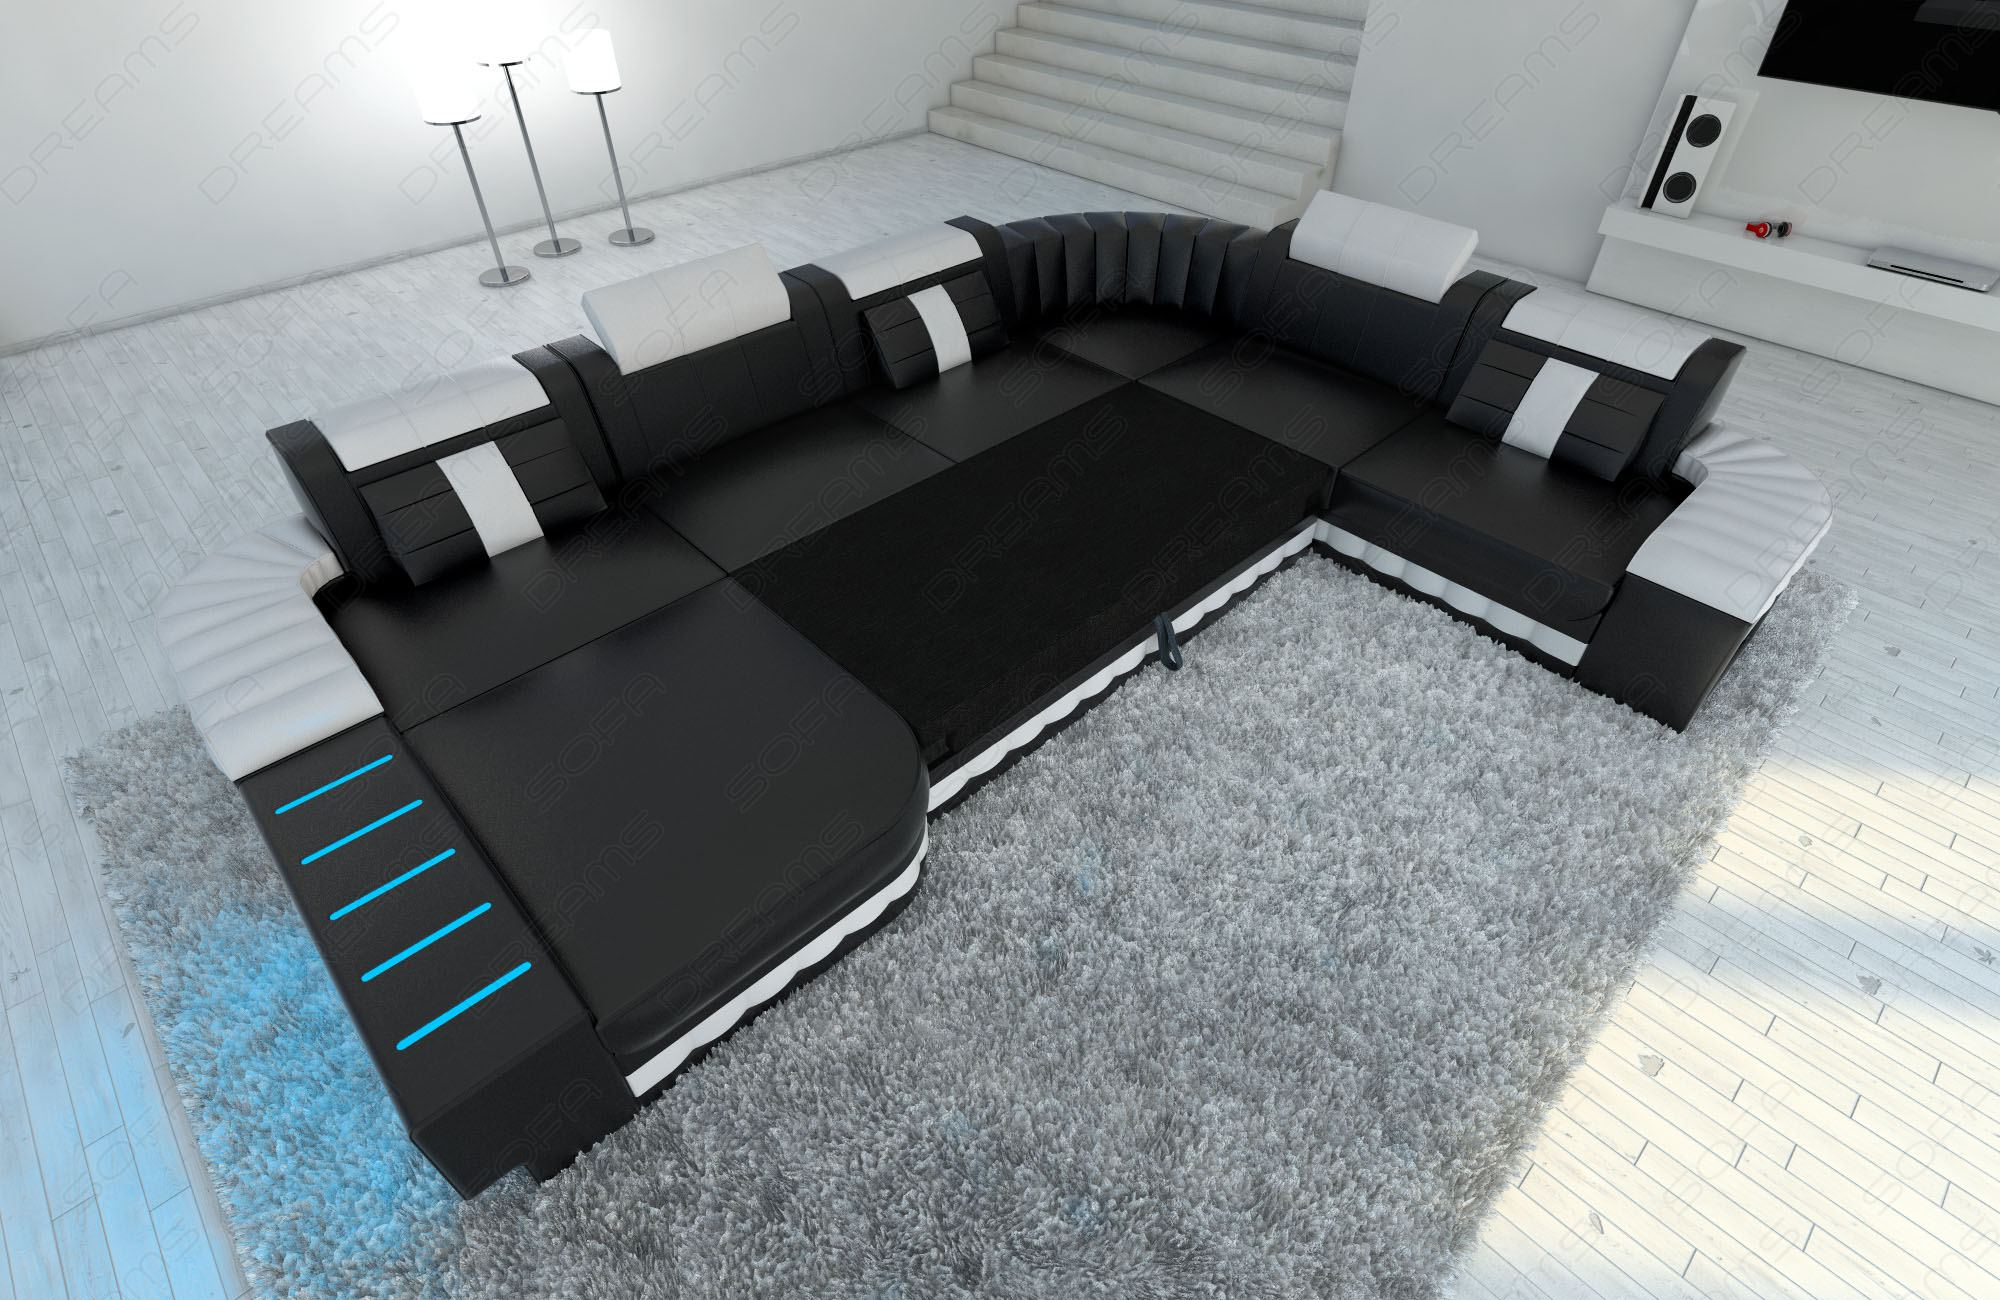 Xxl sofa mit bettfunktion  Fabric Sectional Sofa BELLAGIO XXL Design Couch with LED Lighting ...